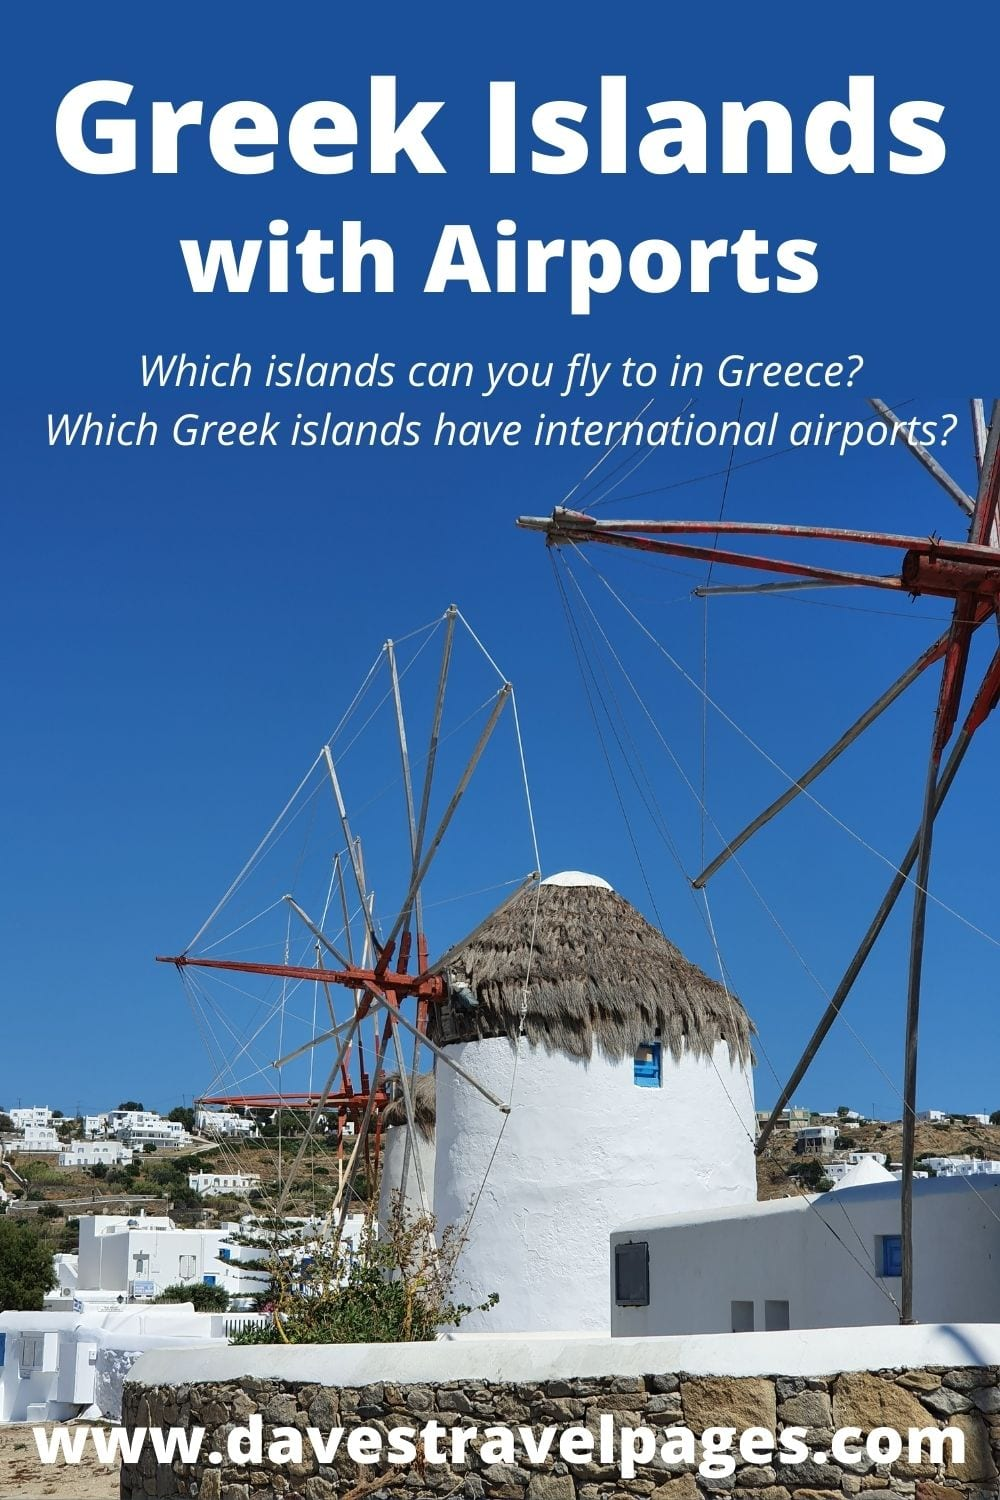 A complete list of Greek islands with airports